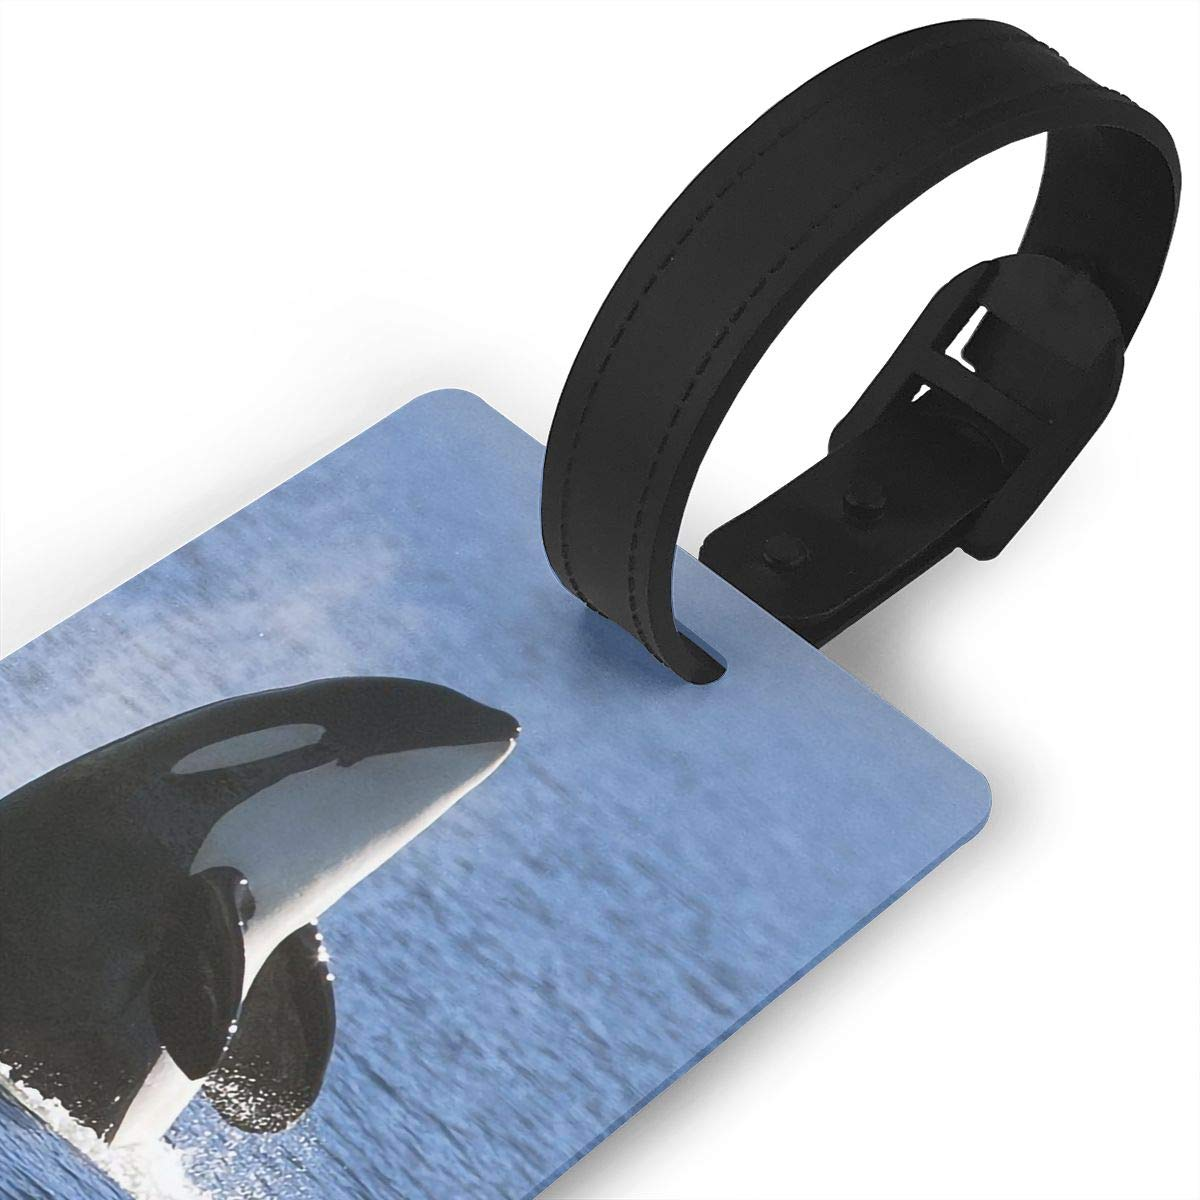 2 Pack Luggage Tags Whales Travel Tags For Travel Tags Accessories